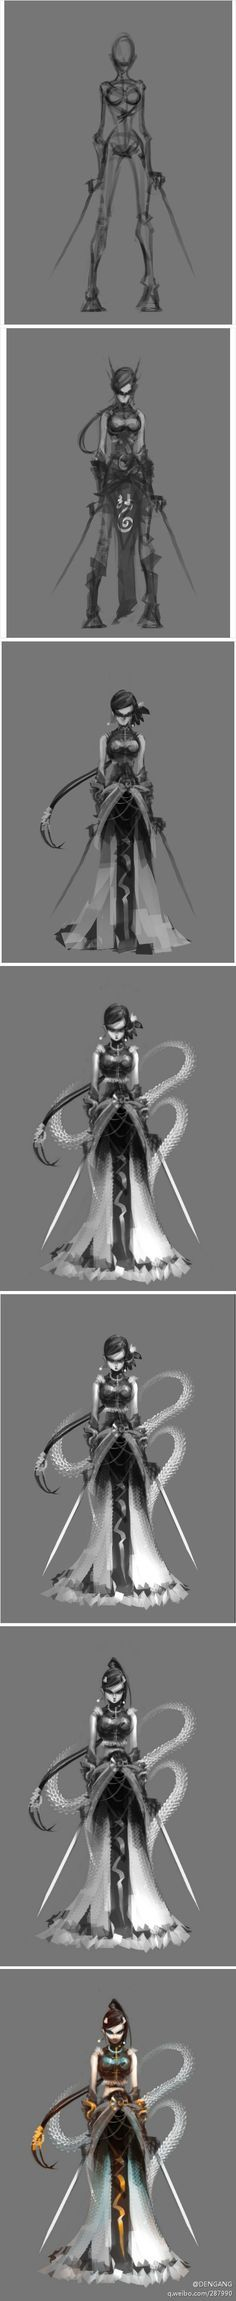 (2) Character illustration | concept character | Pinterest